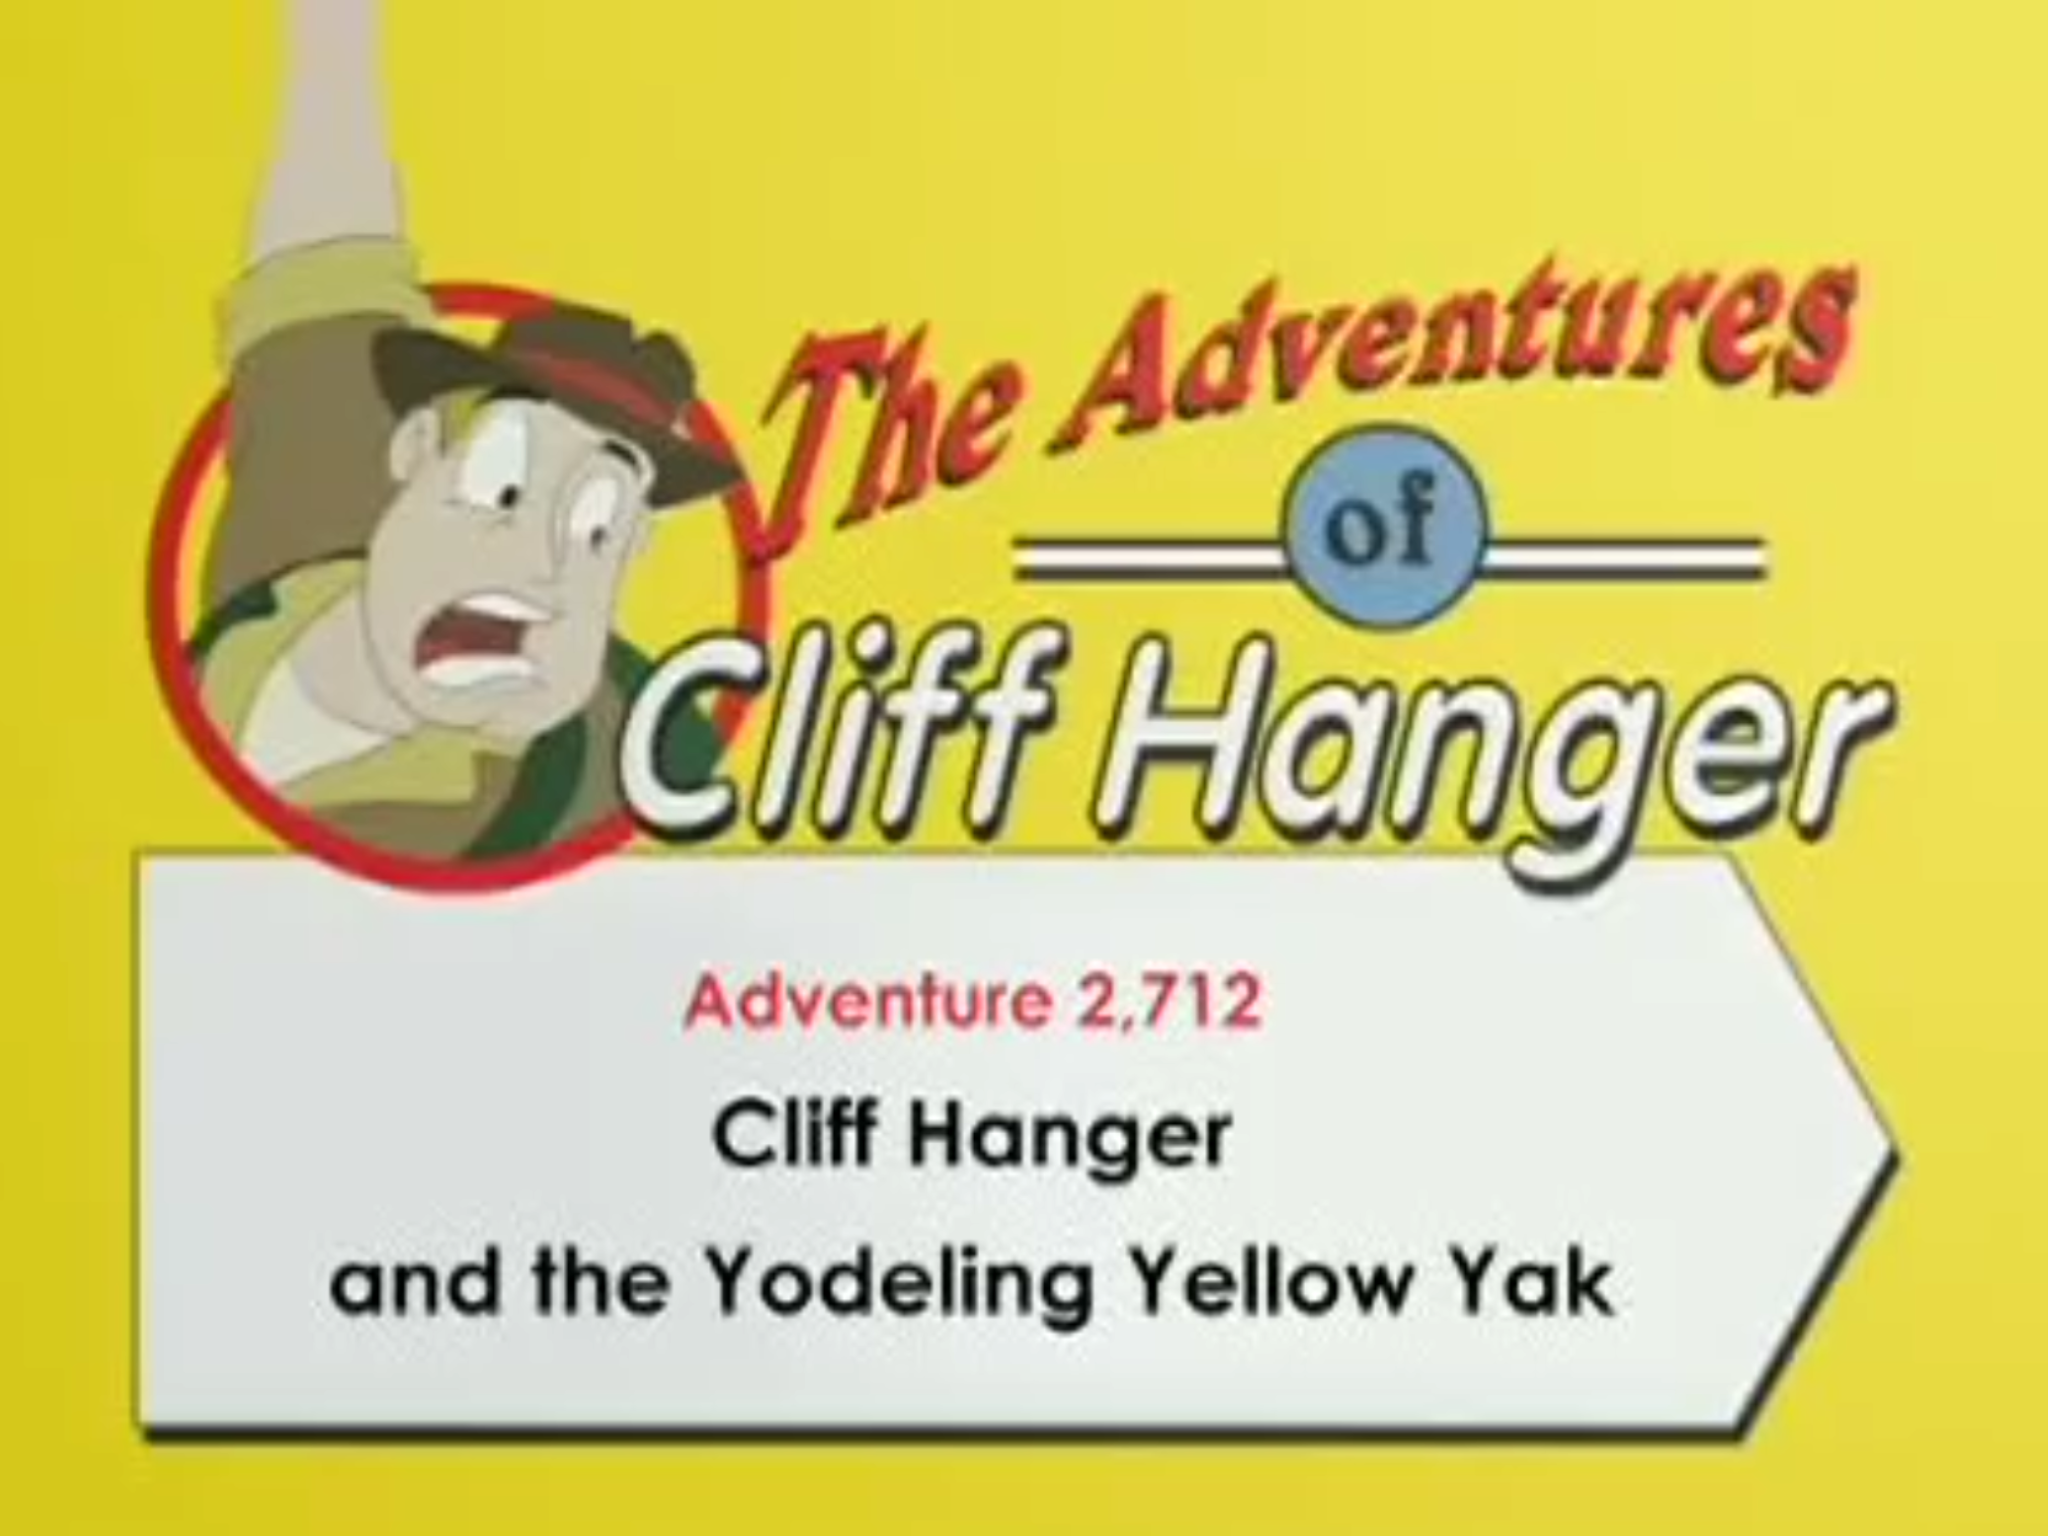 Cliff Hanger and the Yodeling Yellow Yak